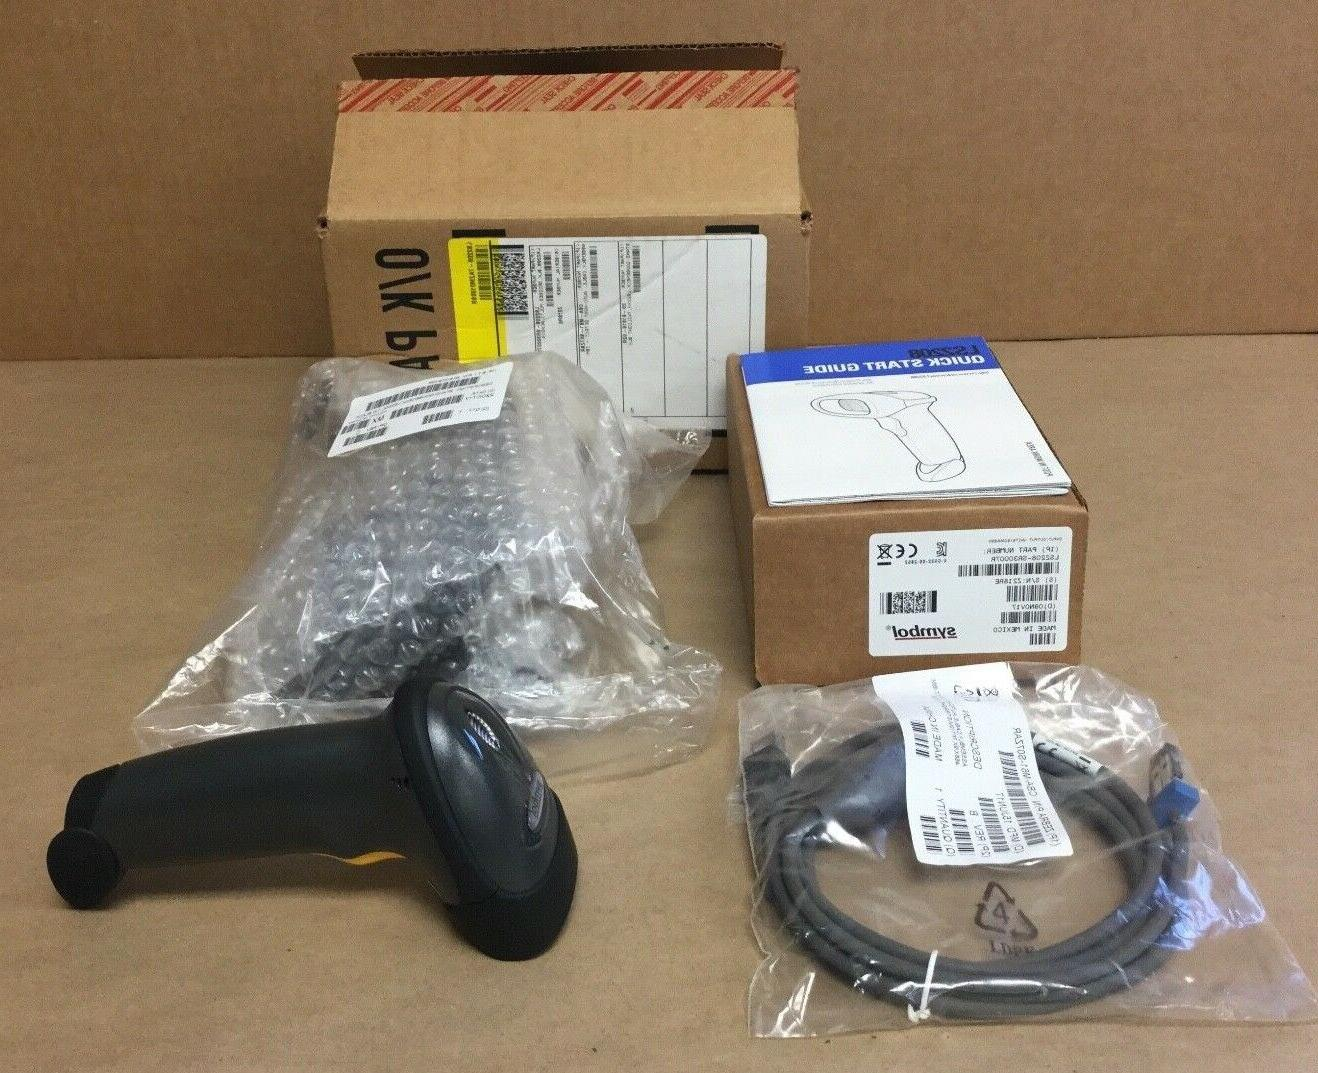 ls2208 general purpose barcode scanner with cable